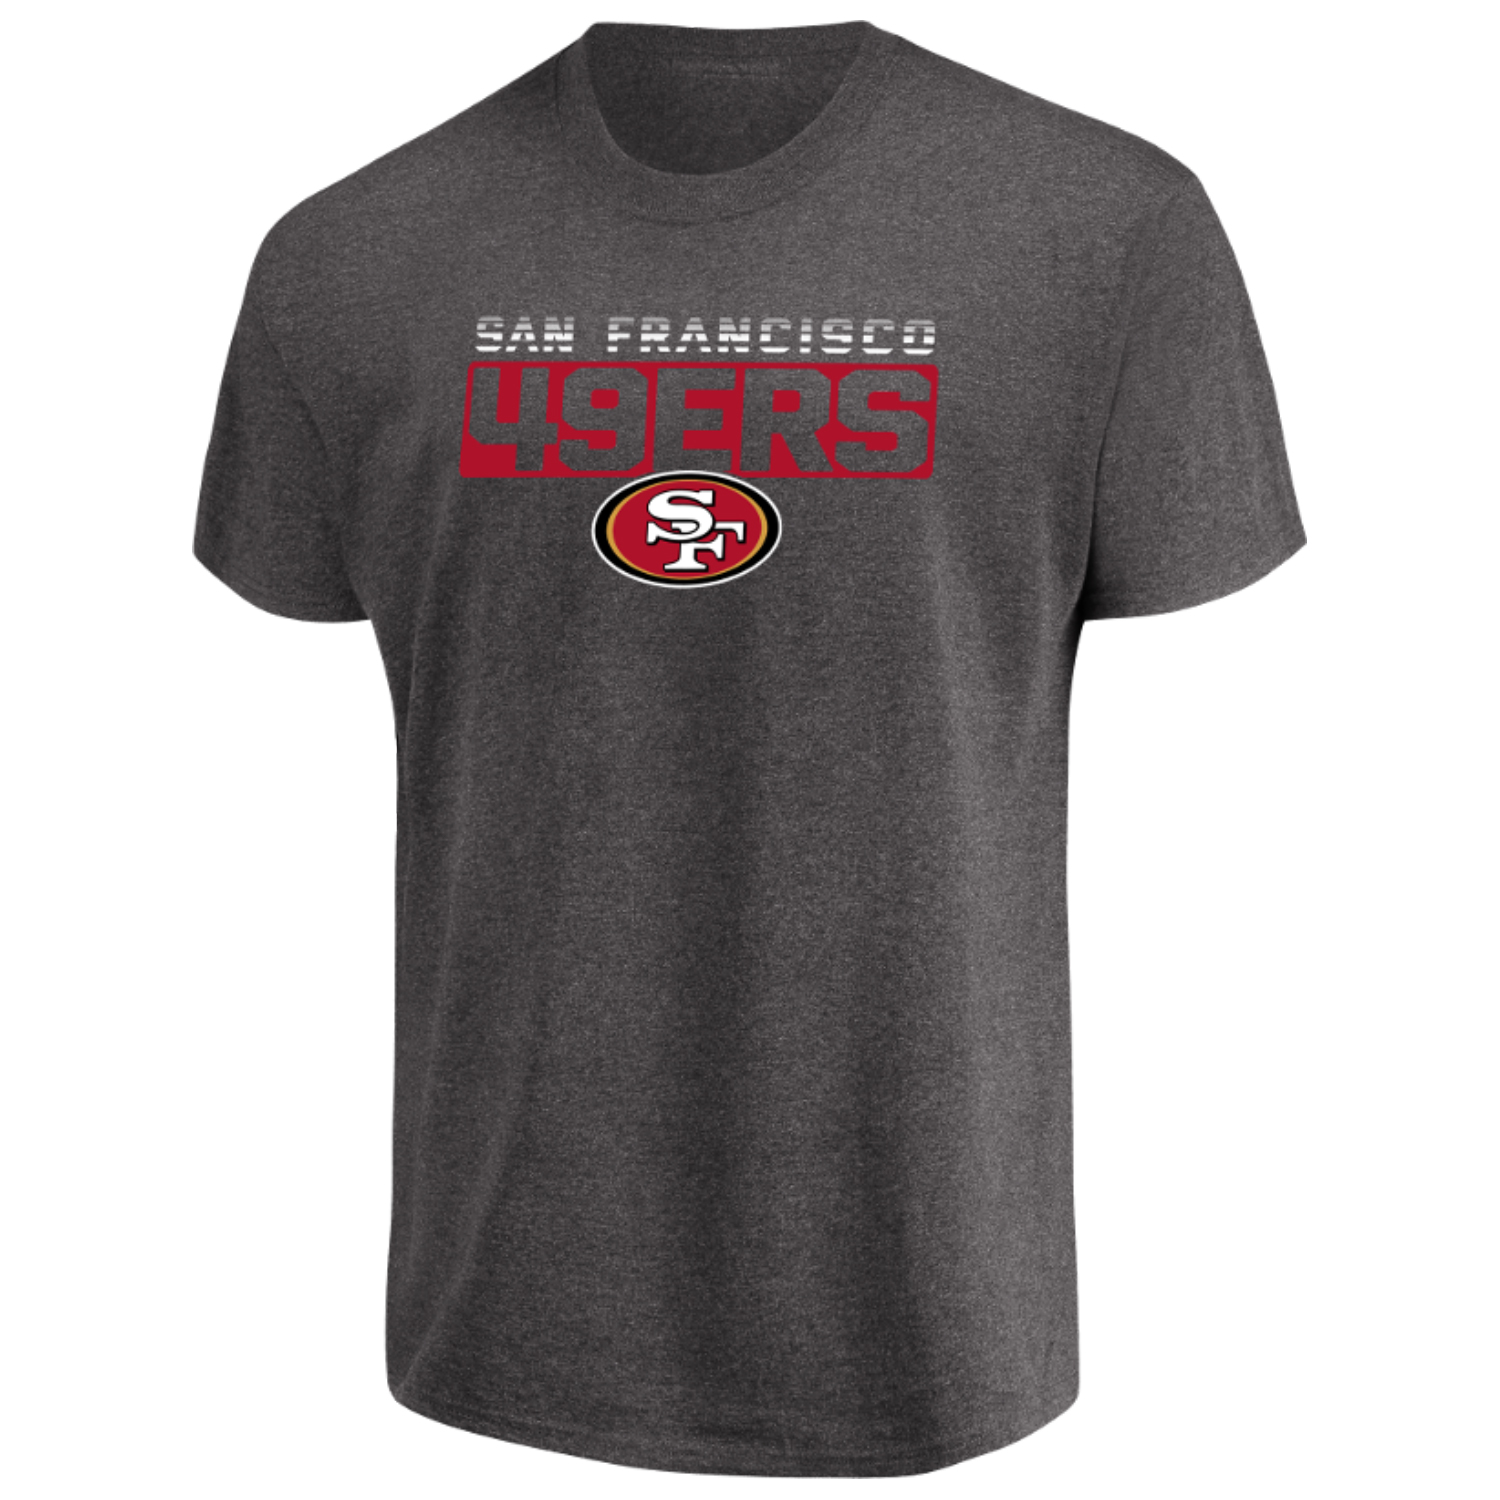 Men's Majestic Heathered Charcoal San Francisco 49ers Come Into Play T-Shirt